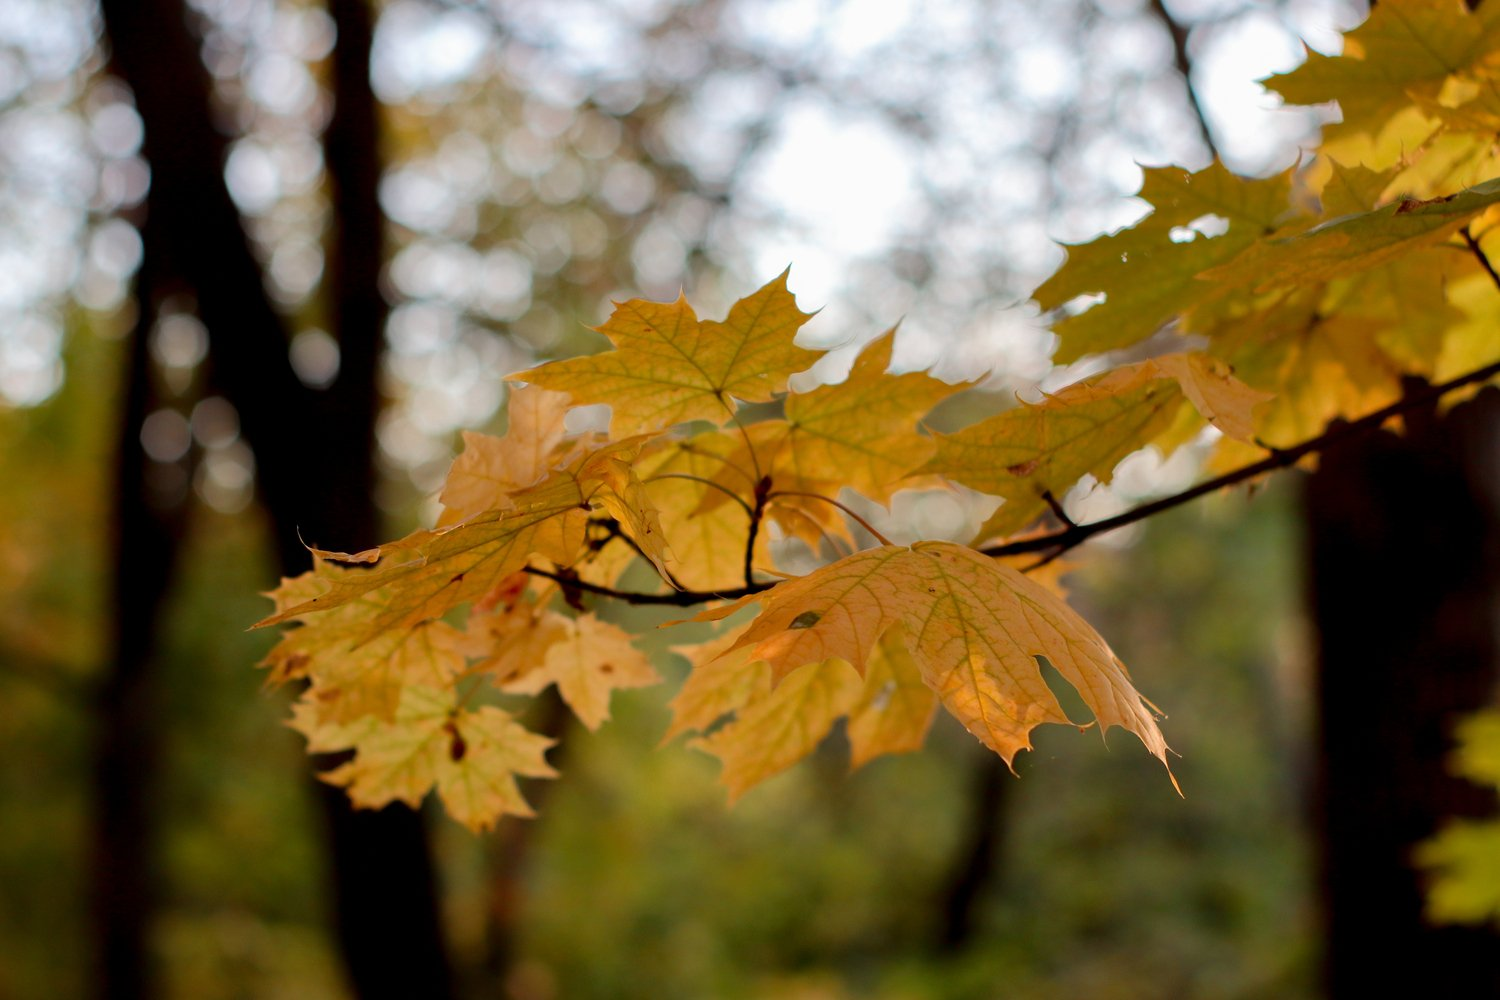 yellow autumn leaves on a tree close up example image 1